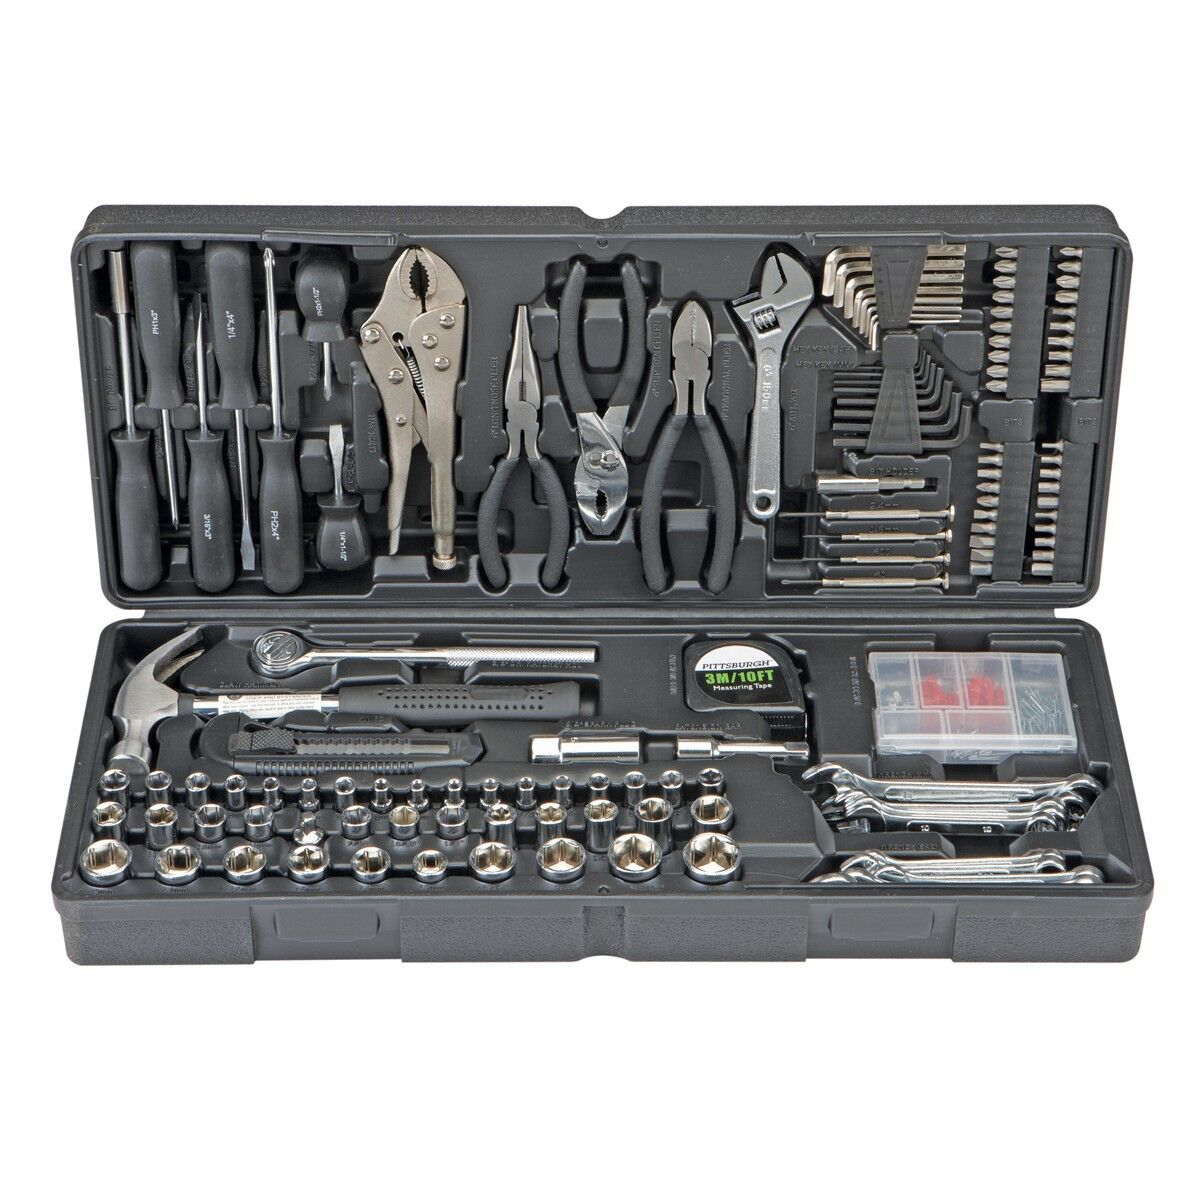 130 pc Tool Set & Case Auto Home Repair Kit SAE Metric LIFET